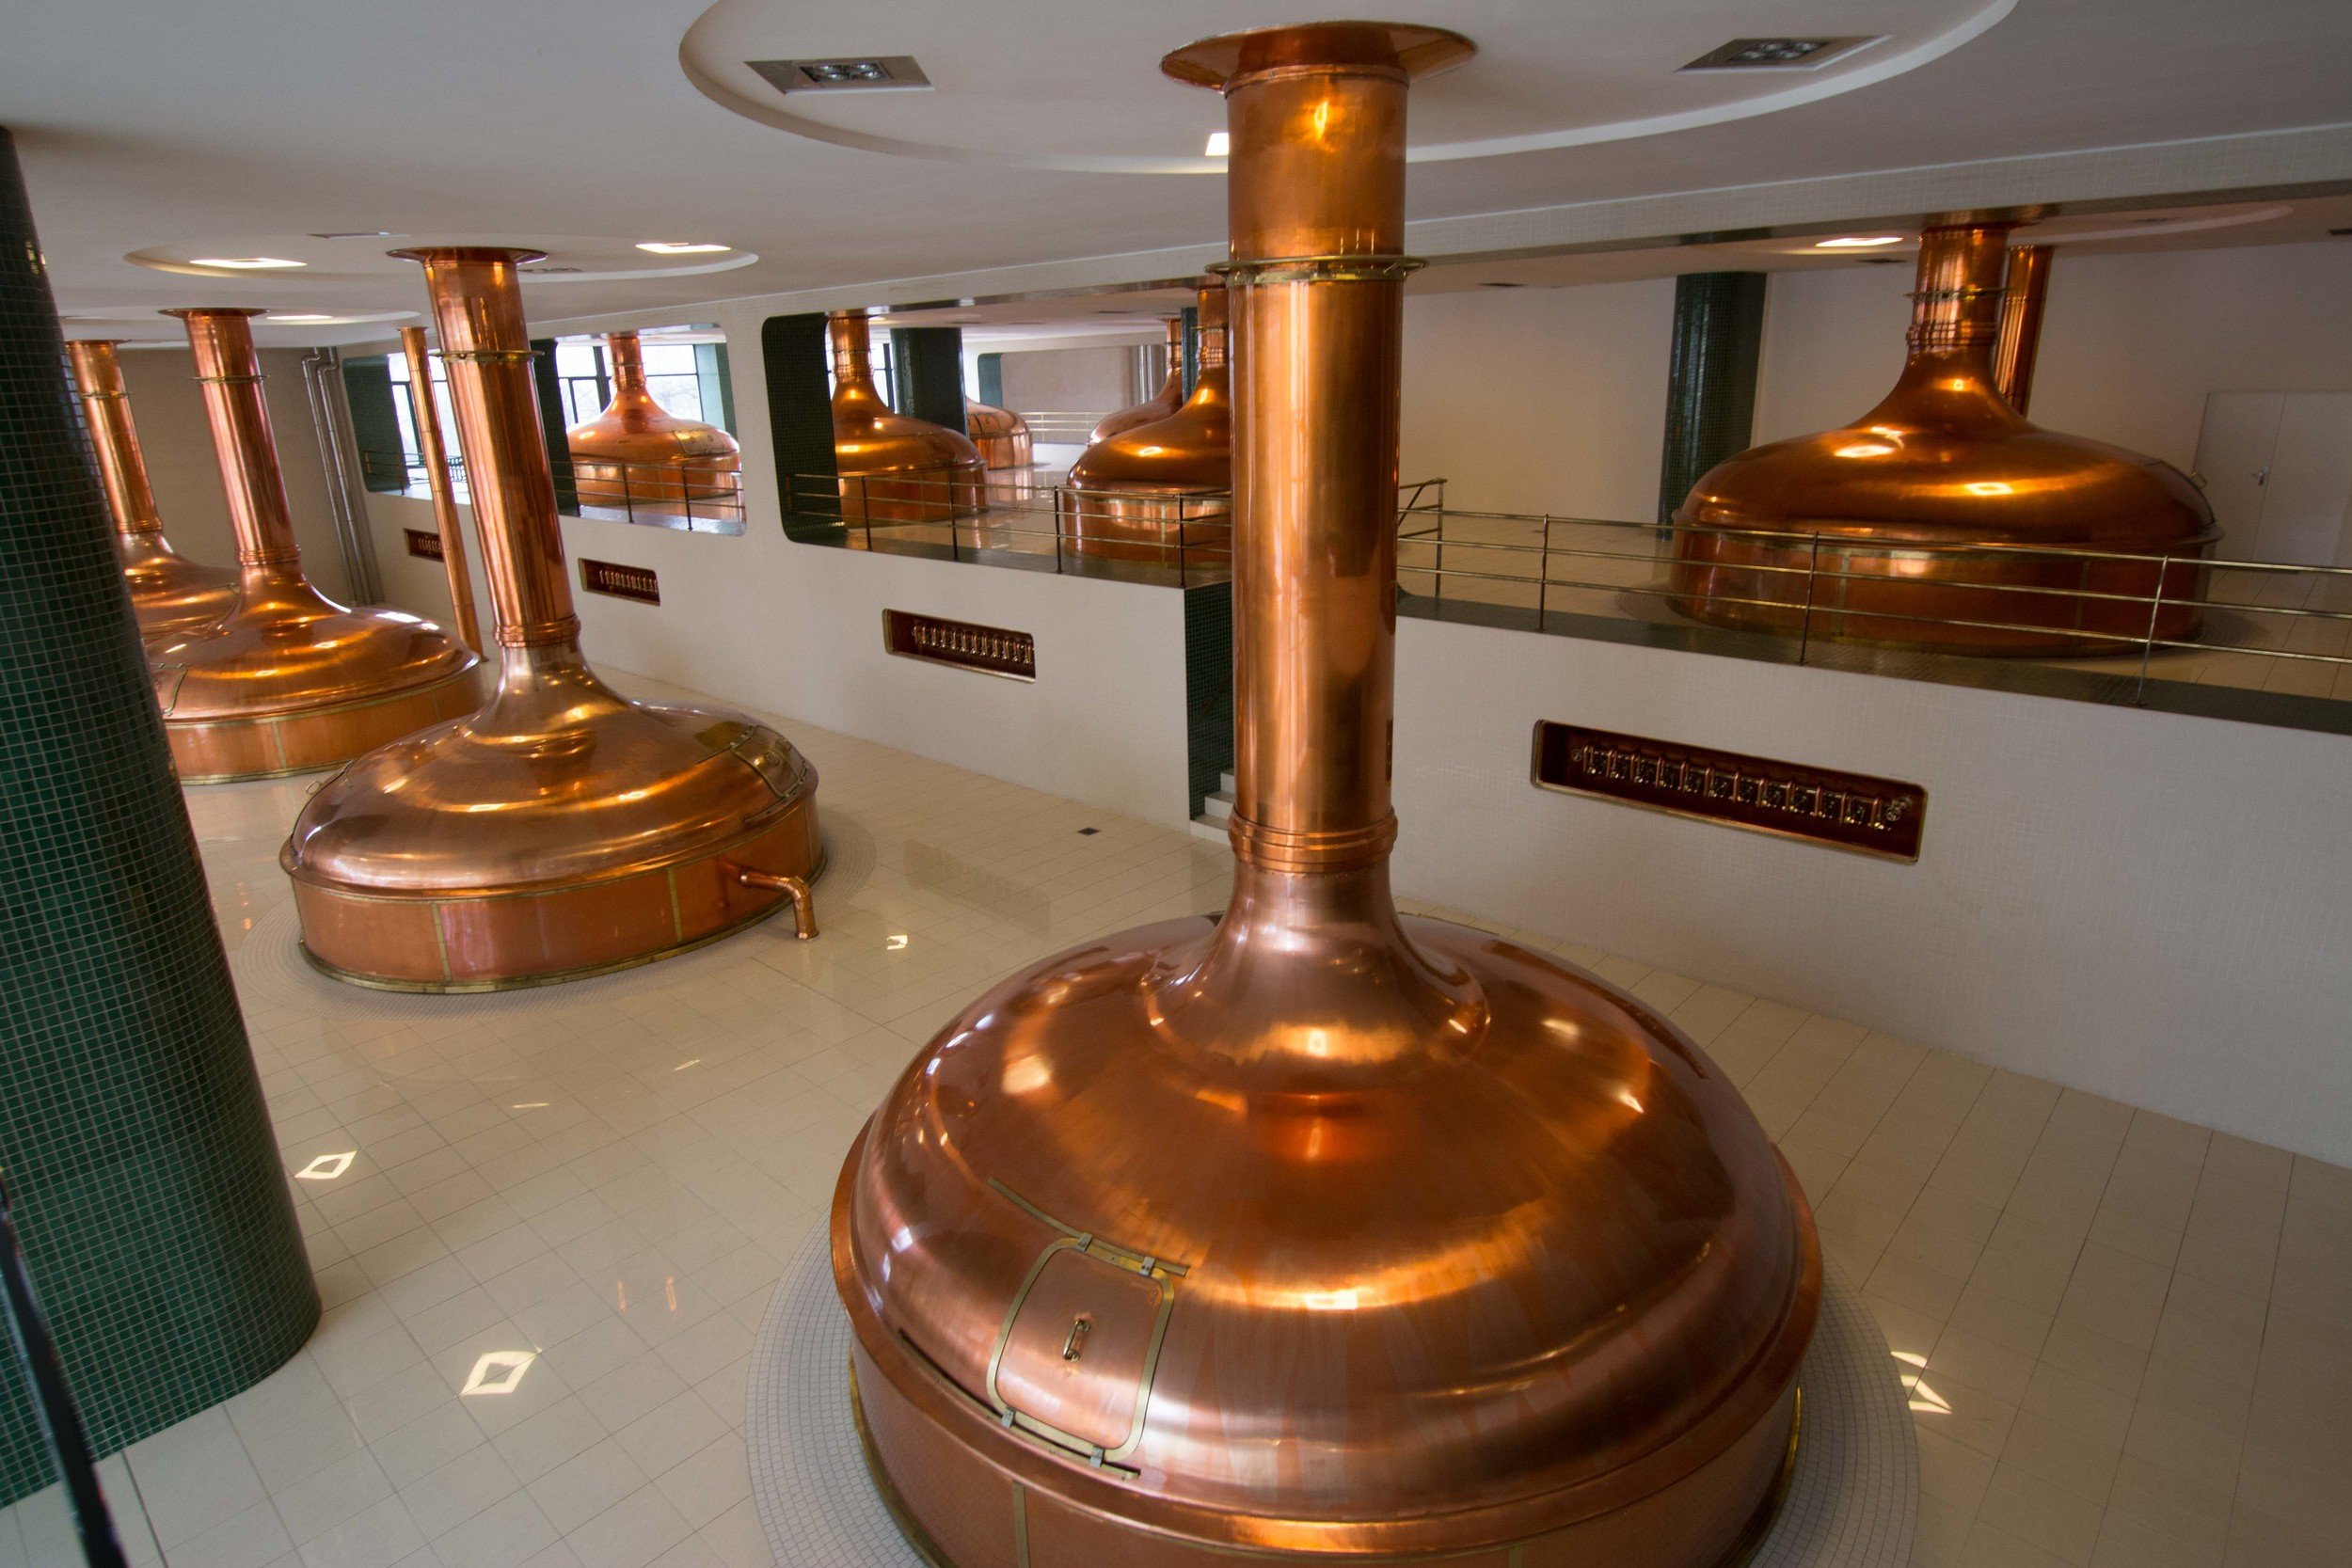 The new Pilsner Urquell brewing Gallery